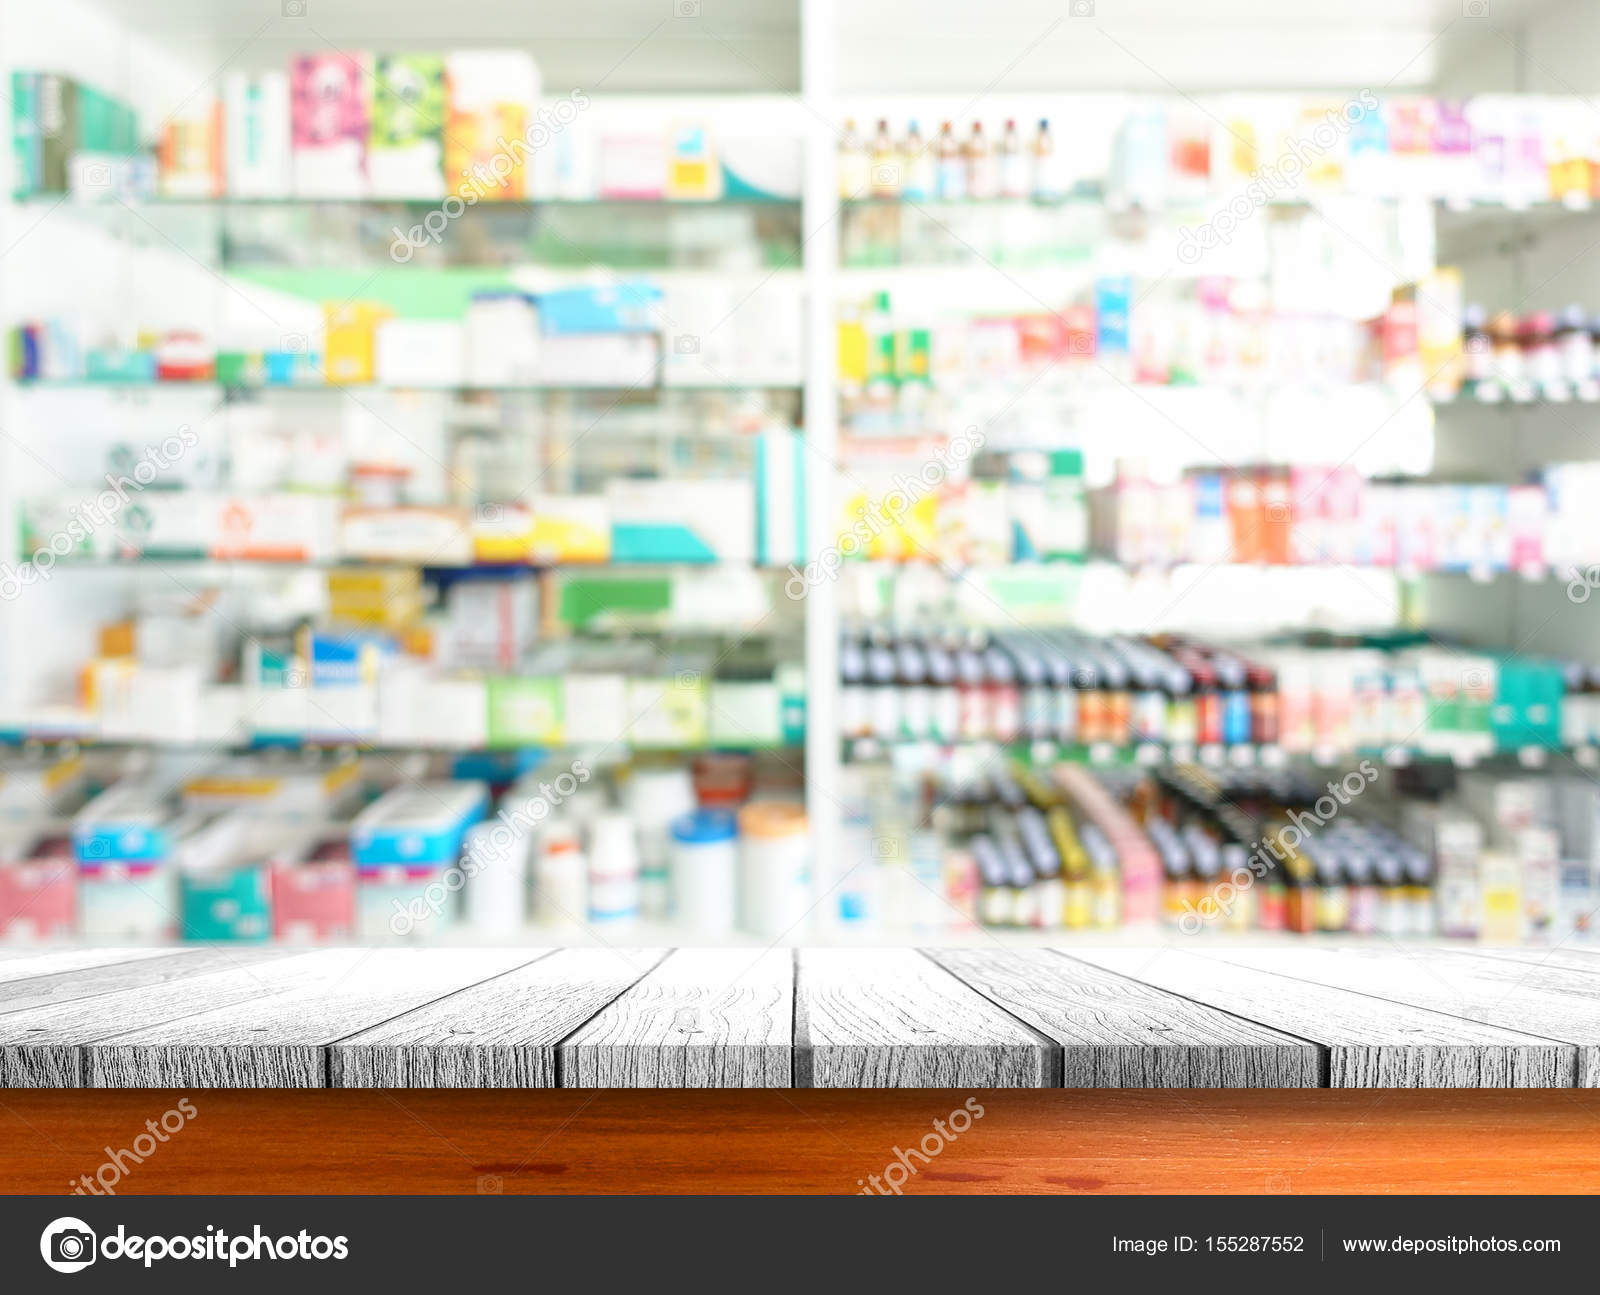 close up pharmacy shop background stock photo thawornnulove 155287552. Black Bedroom Furniture Sets. Home Design Ideas